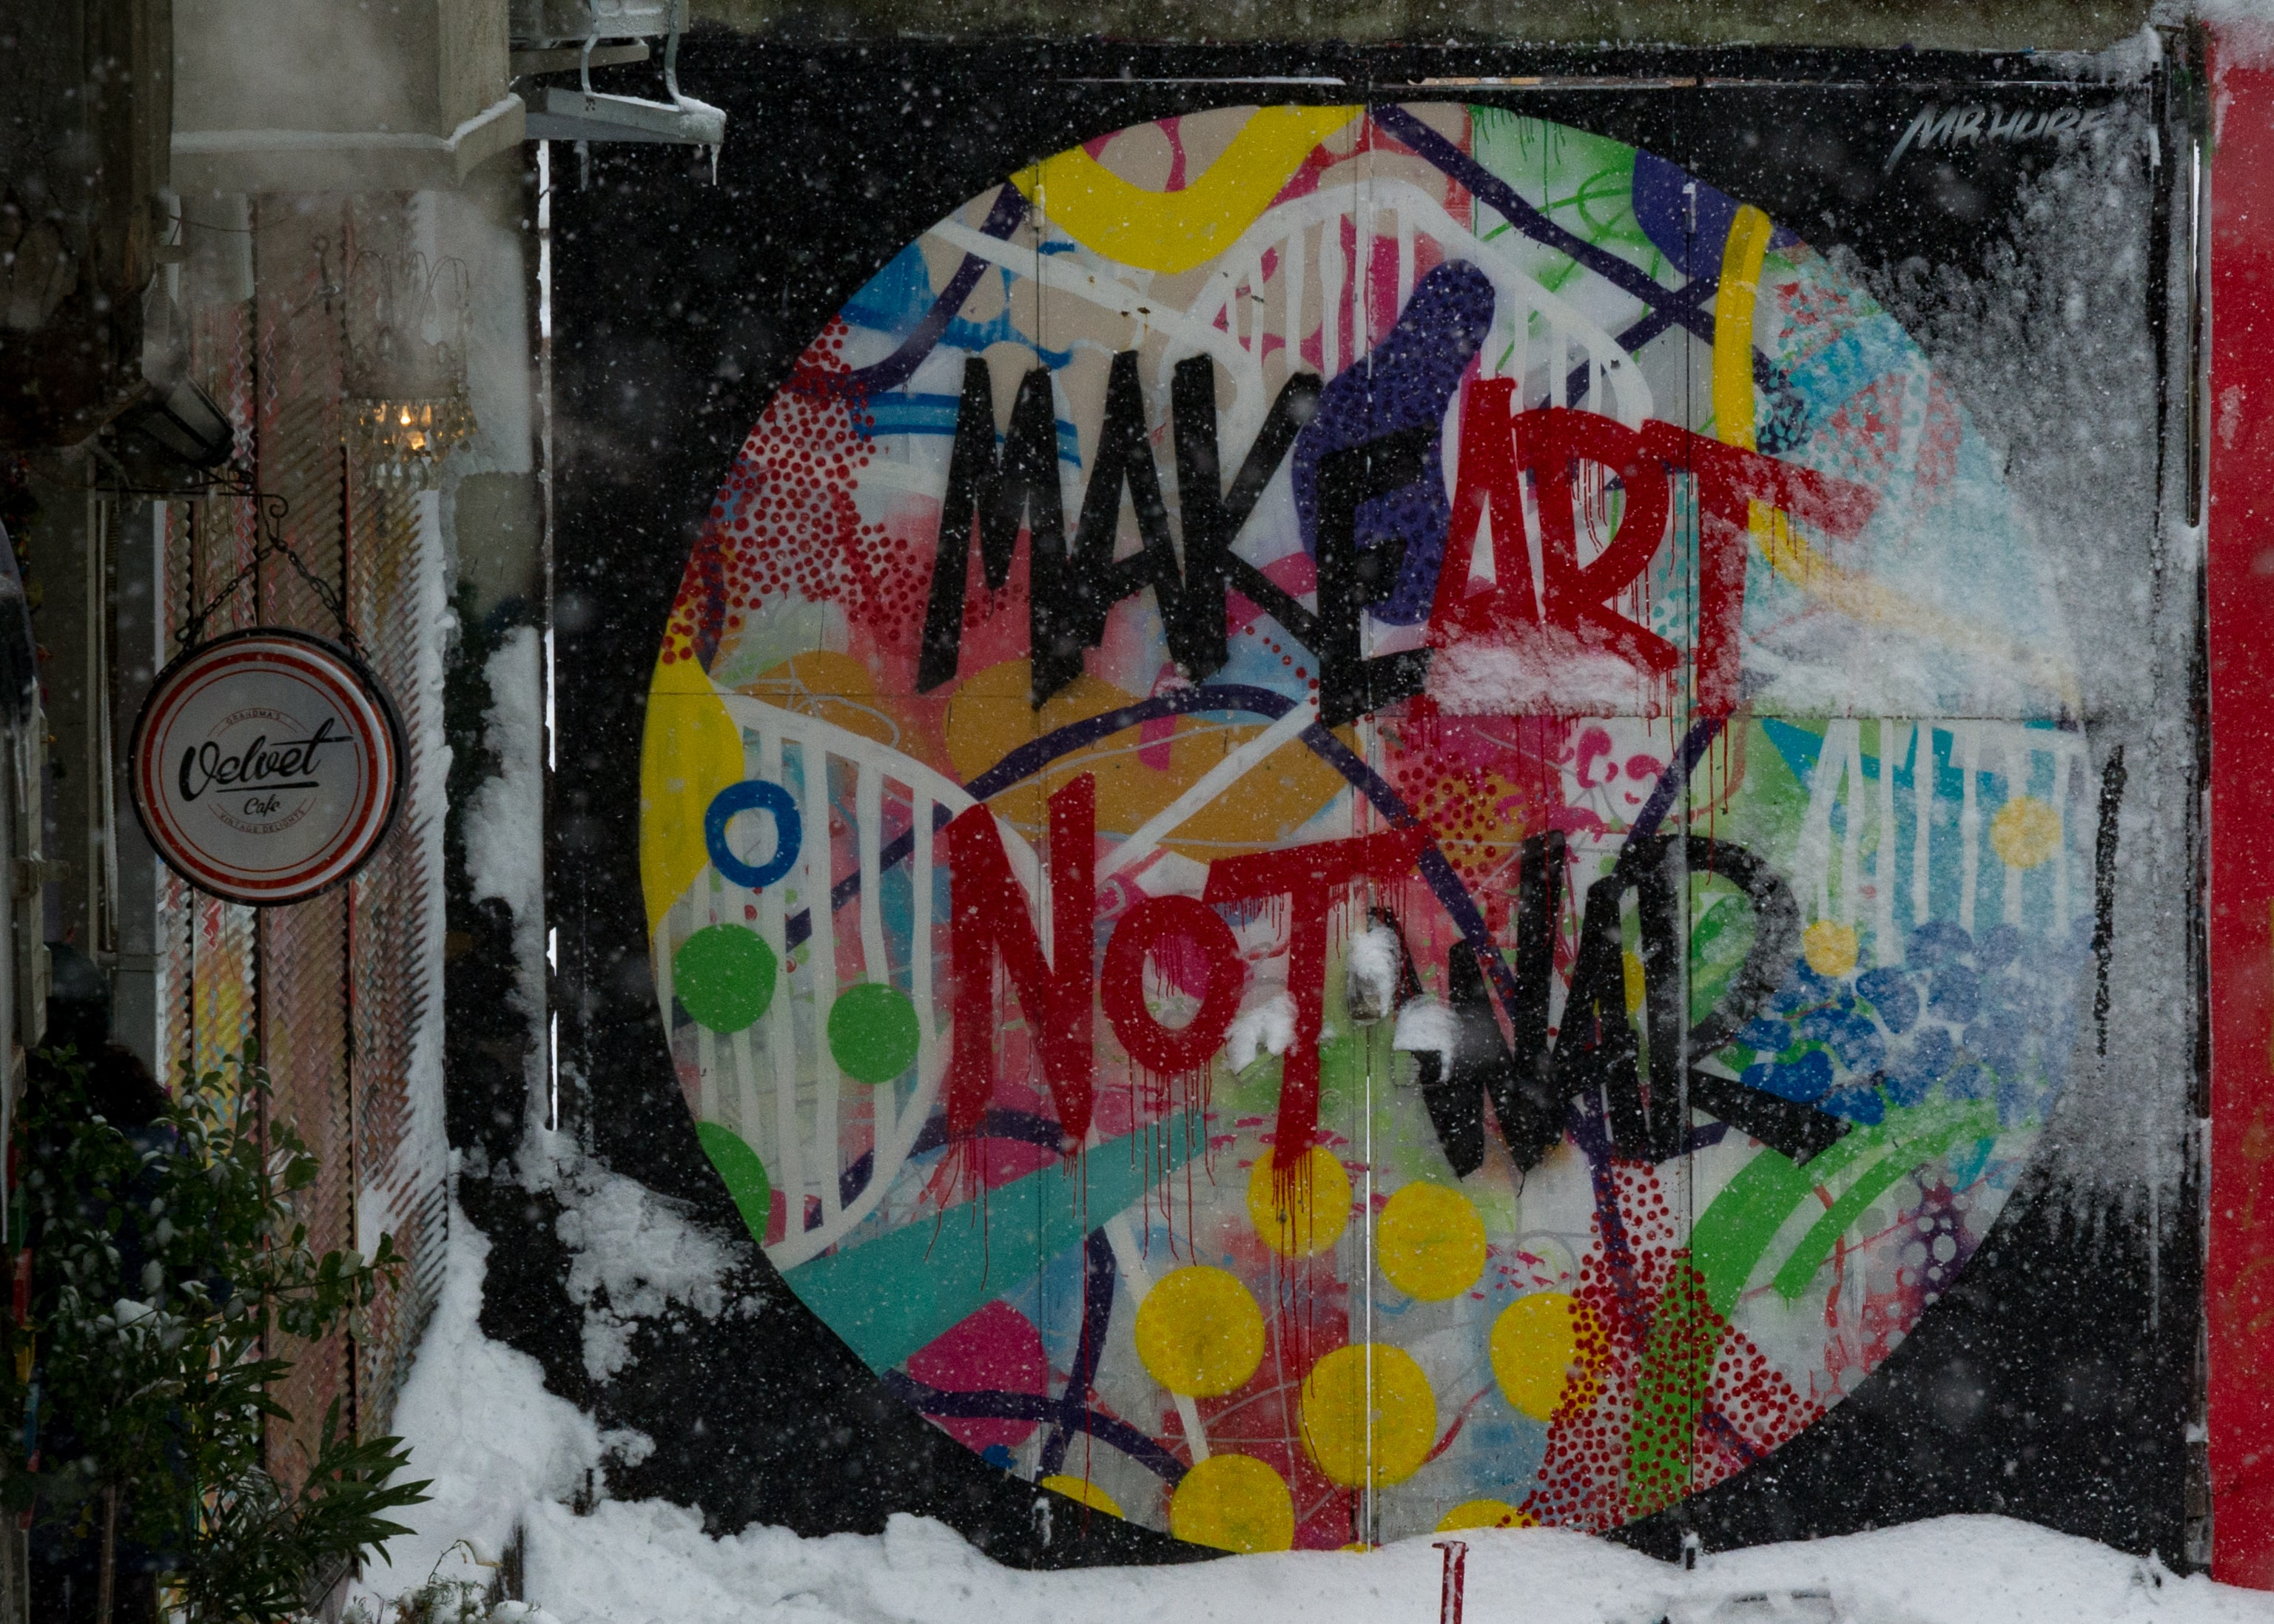 Make art not war colorful graffiti message on urban wall in Istanbul